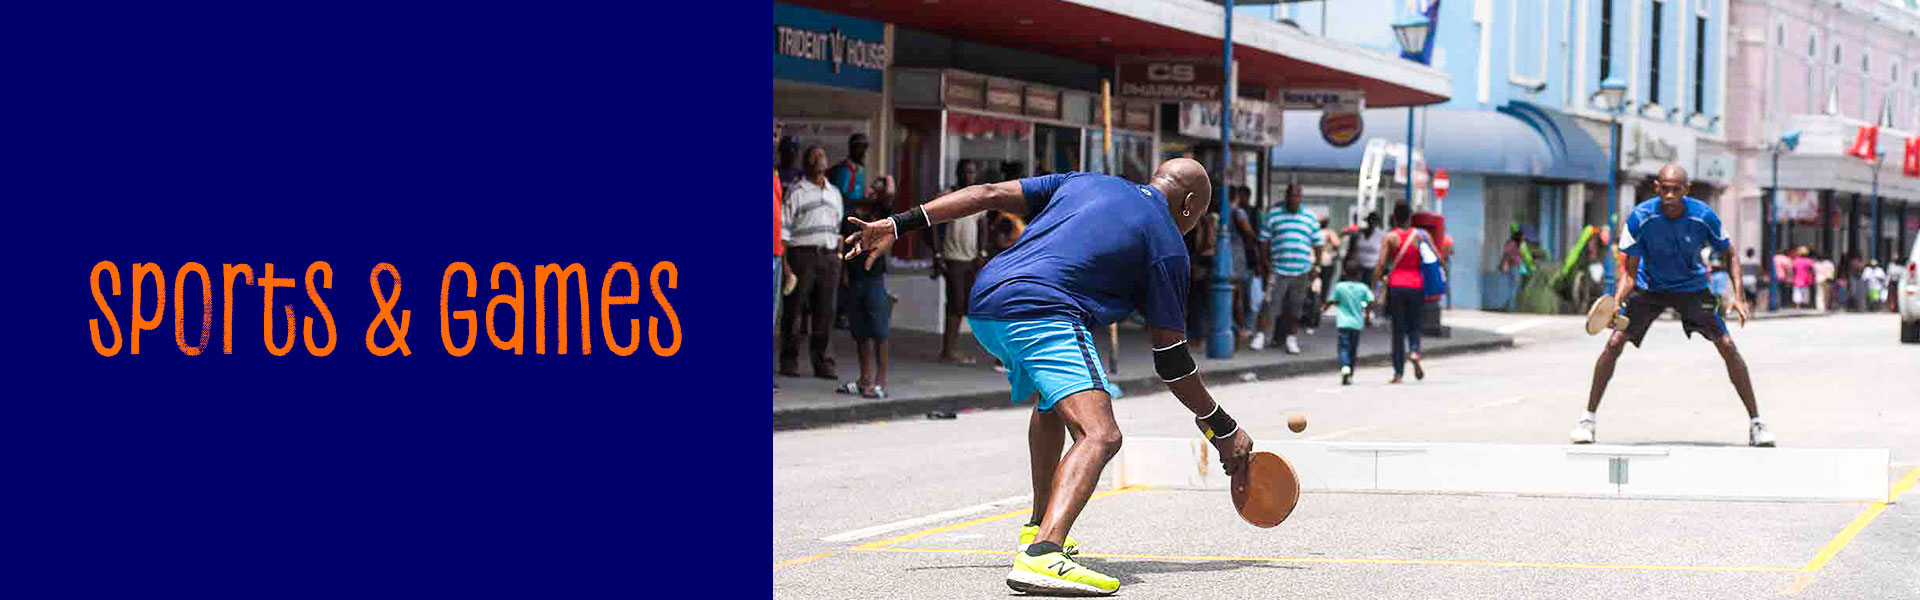 Sports & Games Events - What's On In Barbados